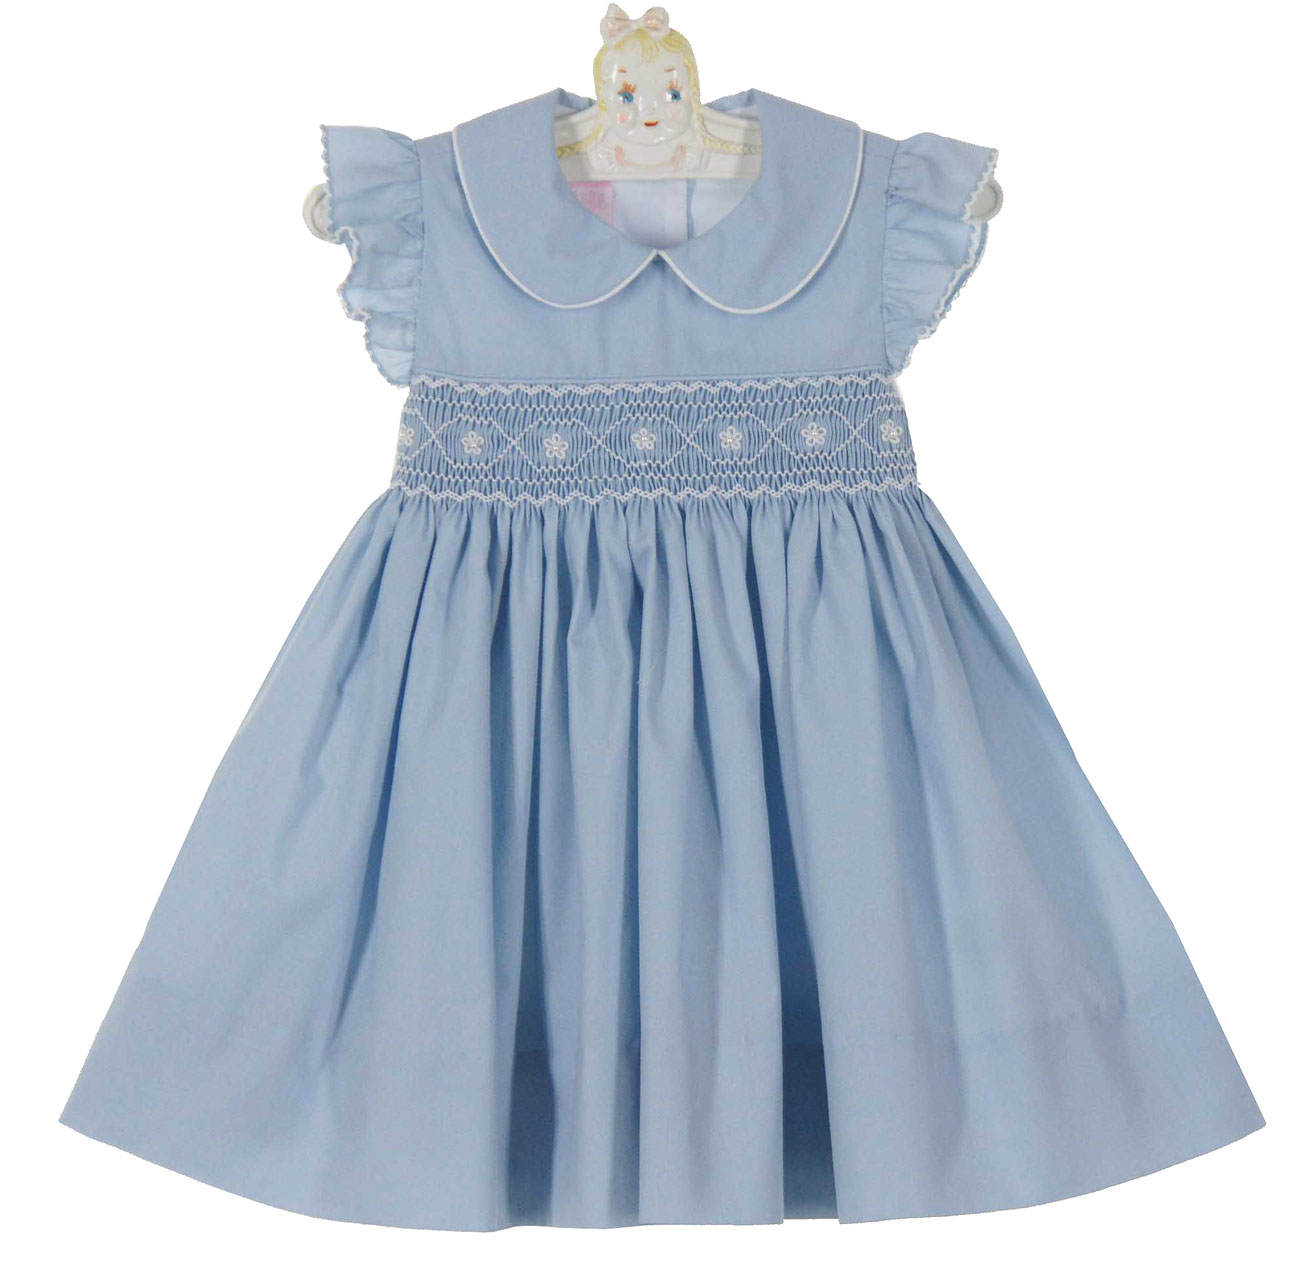 Baby smoked dresses offer classic, traditional, and too-cute style. Your newborn will look darling in a timeless red, pink, yellow, baby blue or white smocked dress from our affordable assortment.